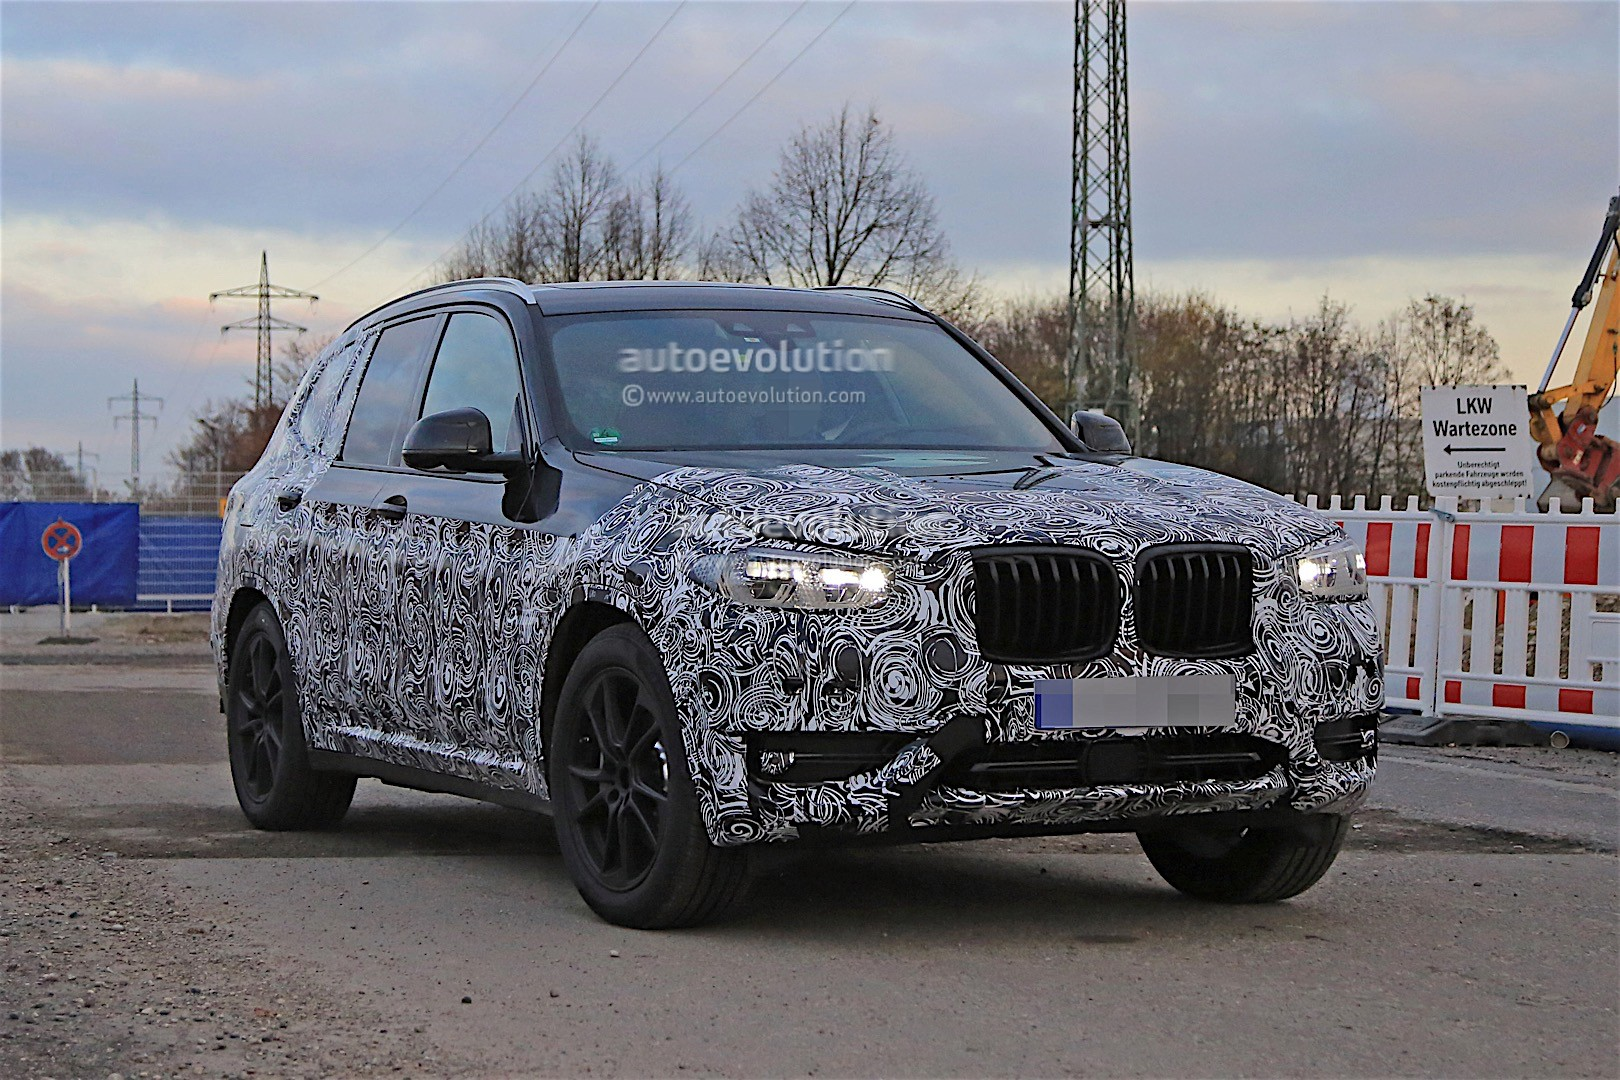 2017 bmw x3 g01 m40i prototype could this be it autoevolution. Black Bedroom Furniture Sets. Home Design Ideas